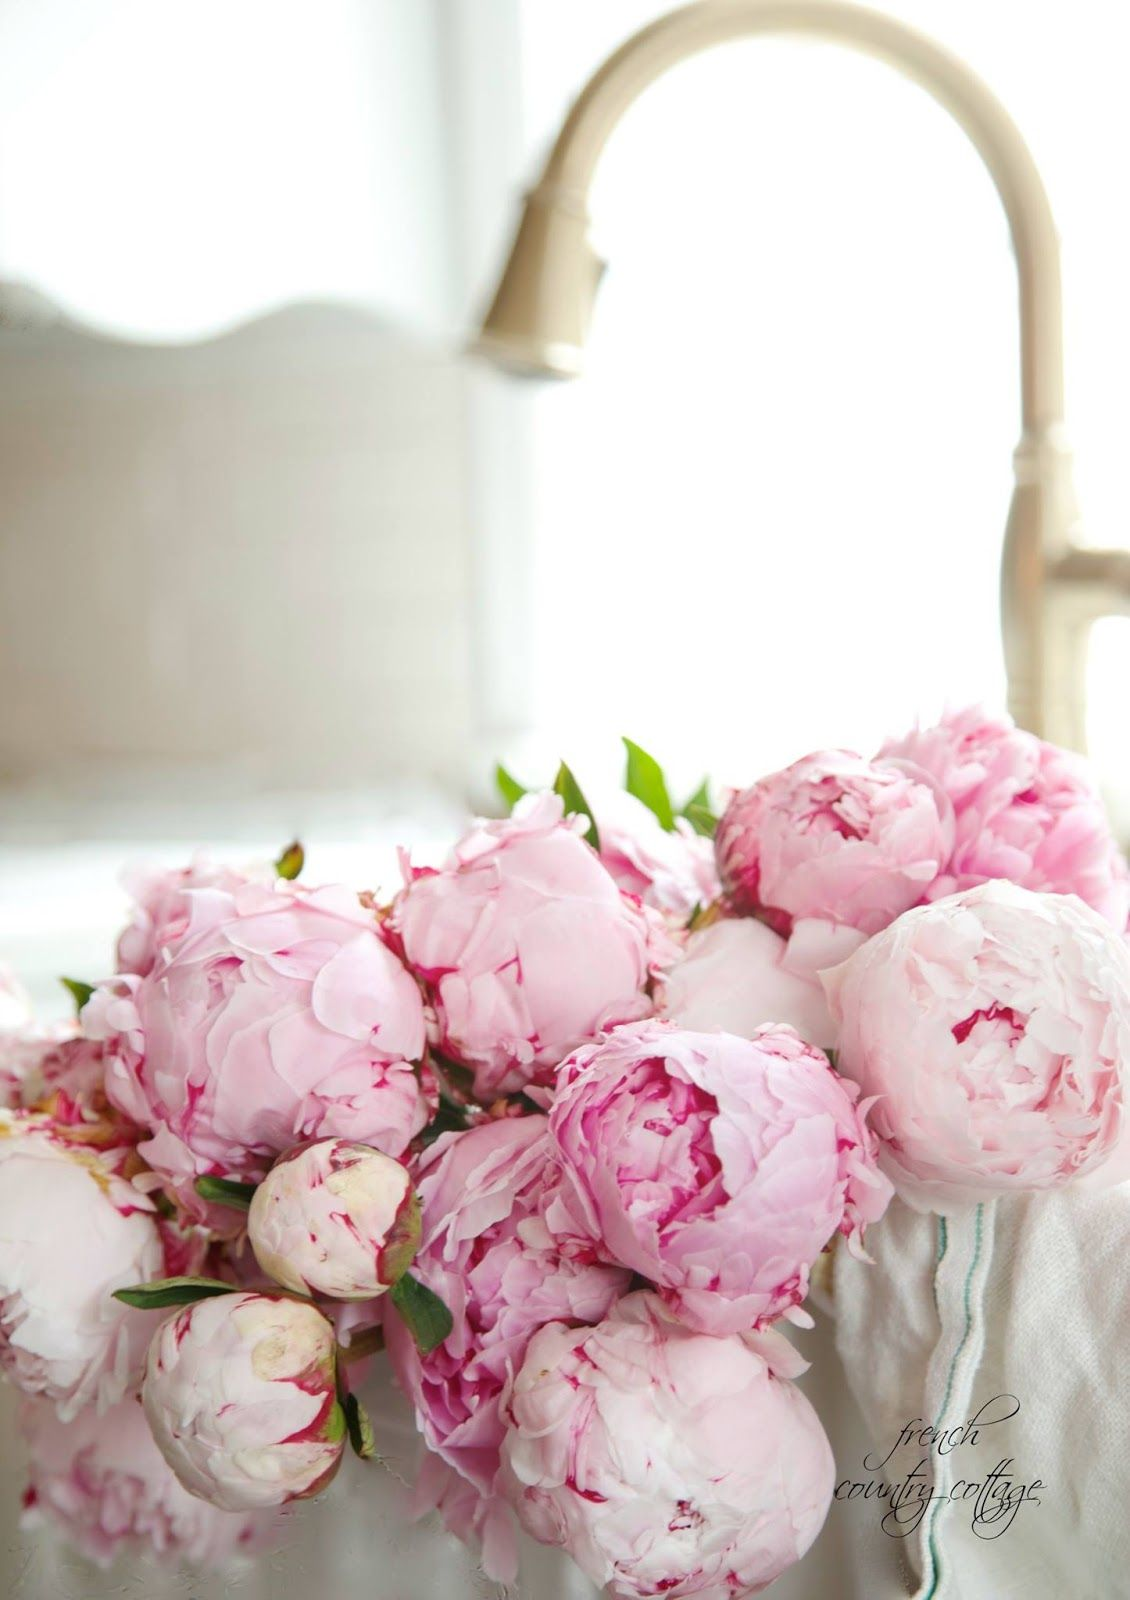 Possibilitieswelcome 2016 french country cottage peony beautiful flowers possibilitieswelcome 2016 french country cottage mightylinksfo